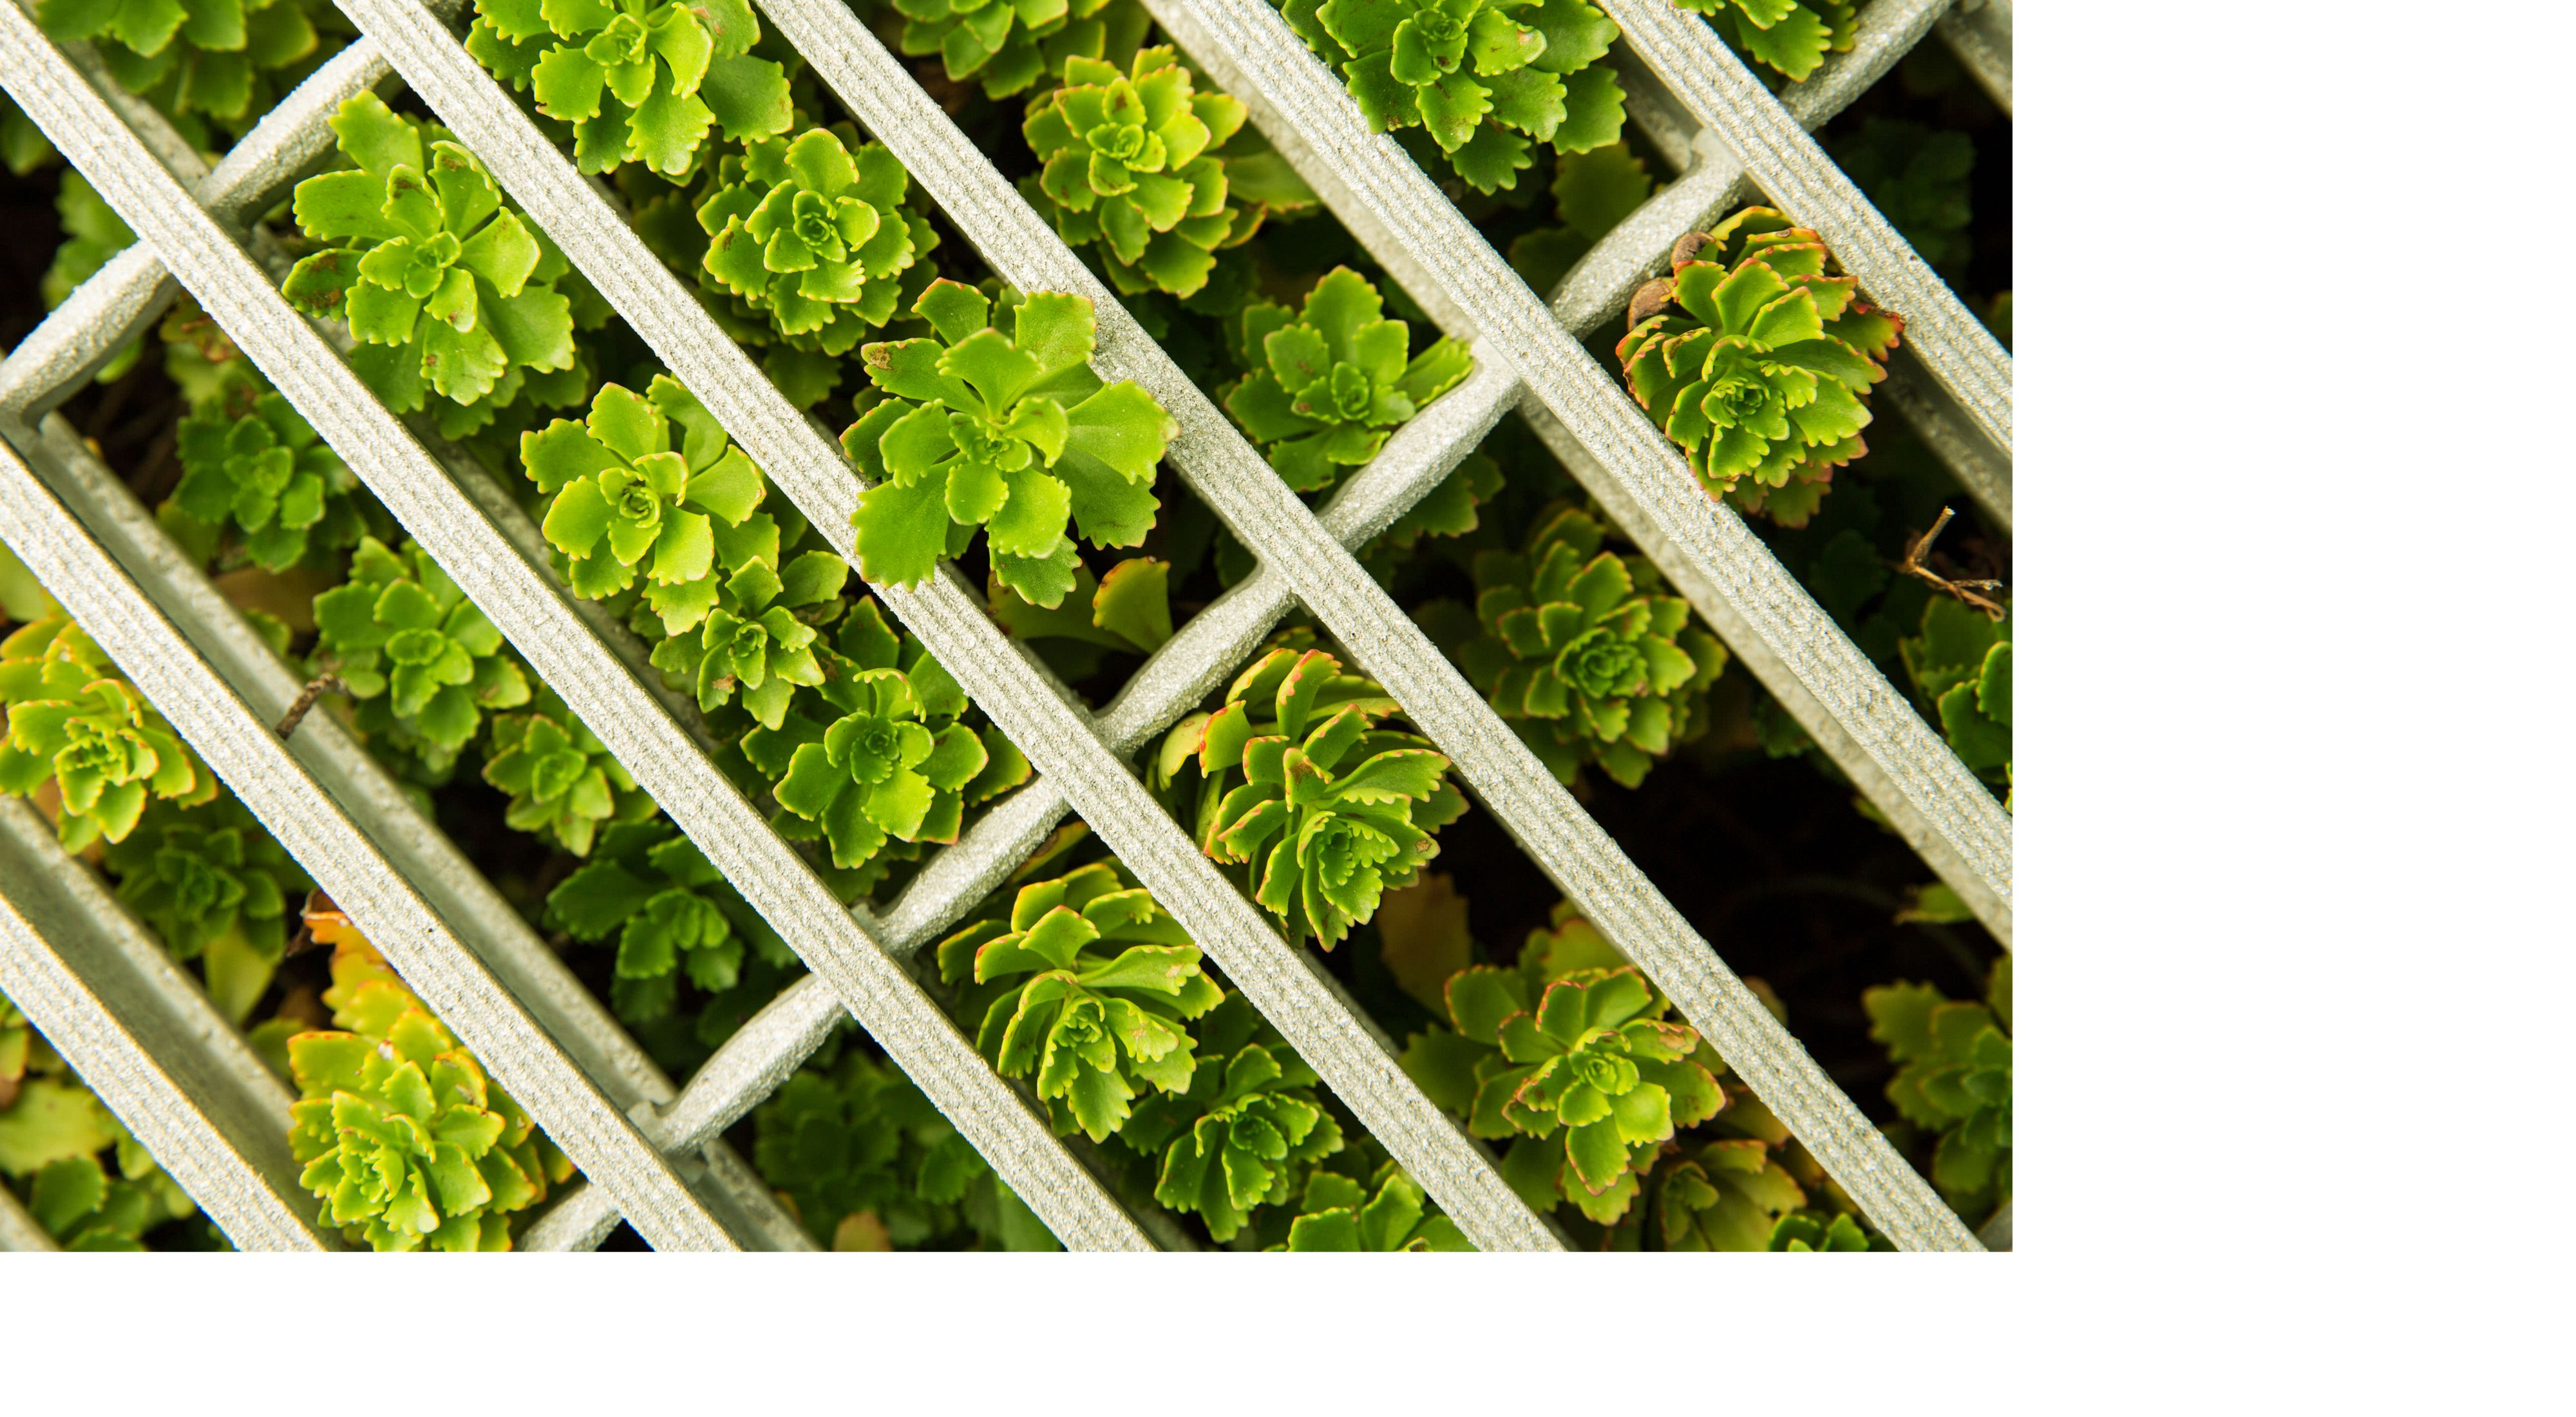 Photo from above of green plants growing in a white grid.